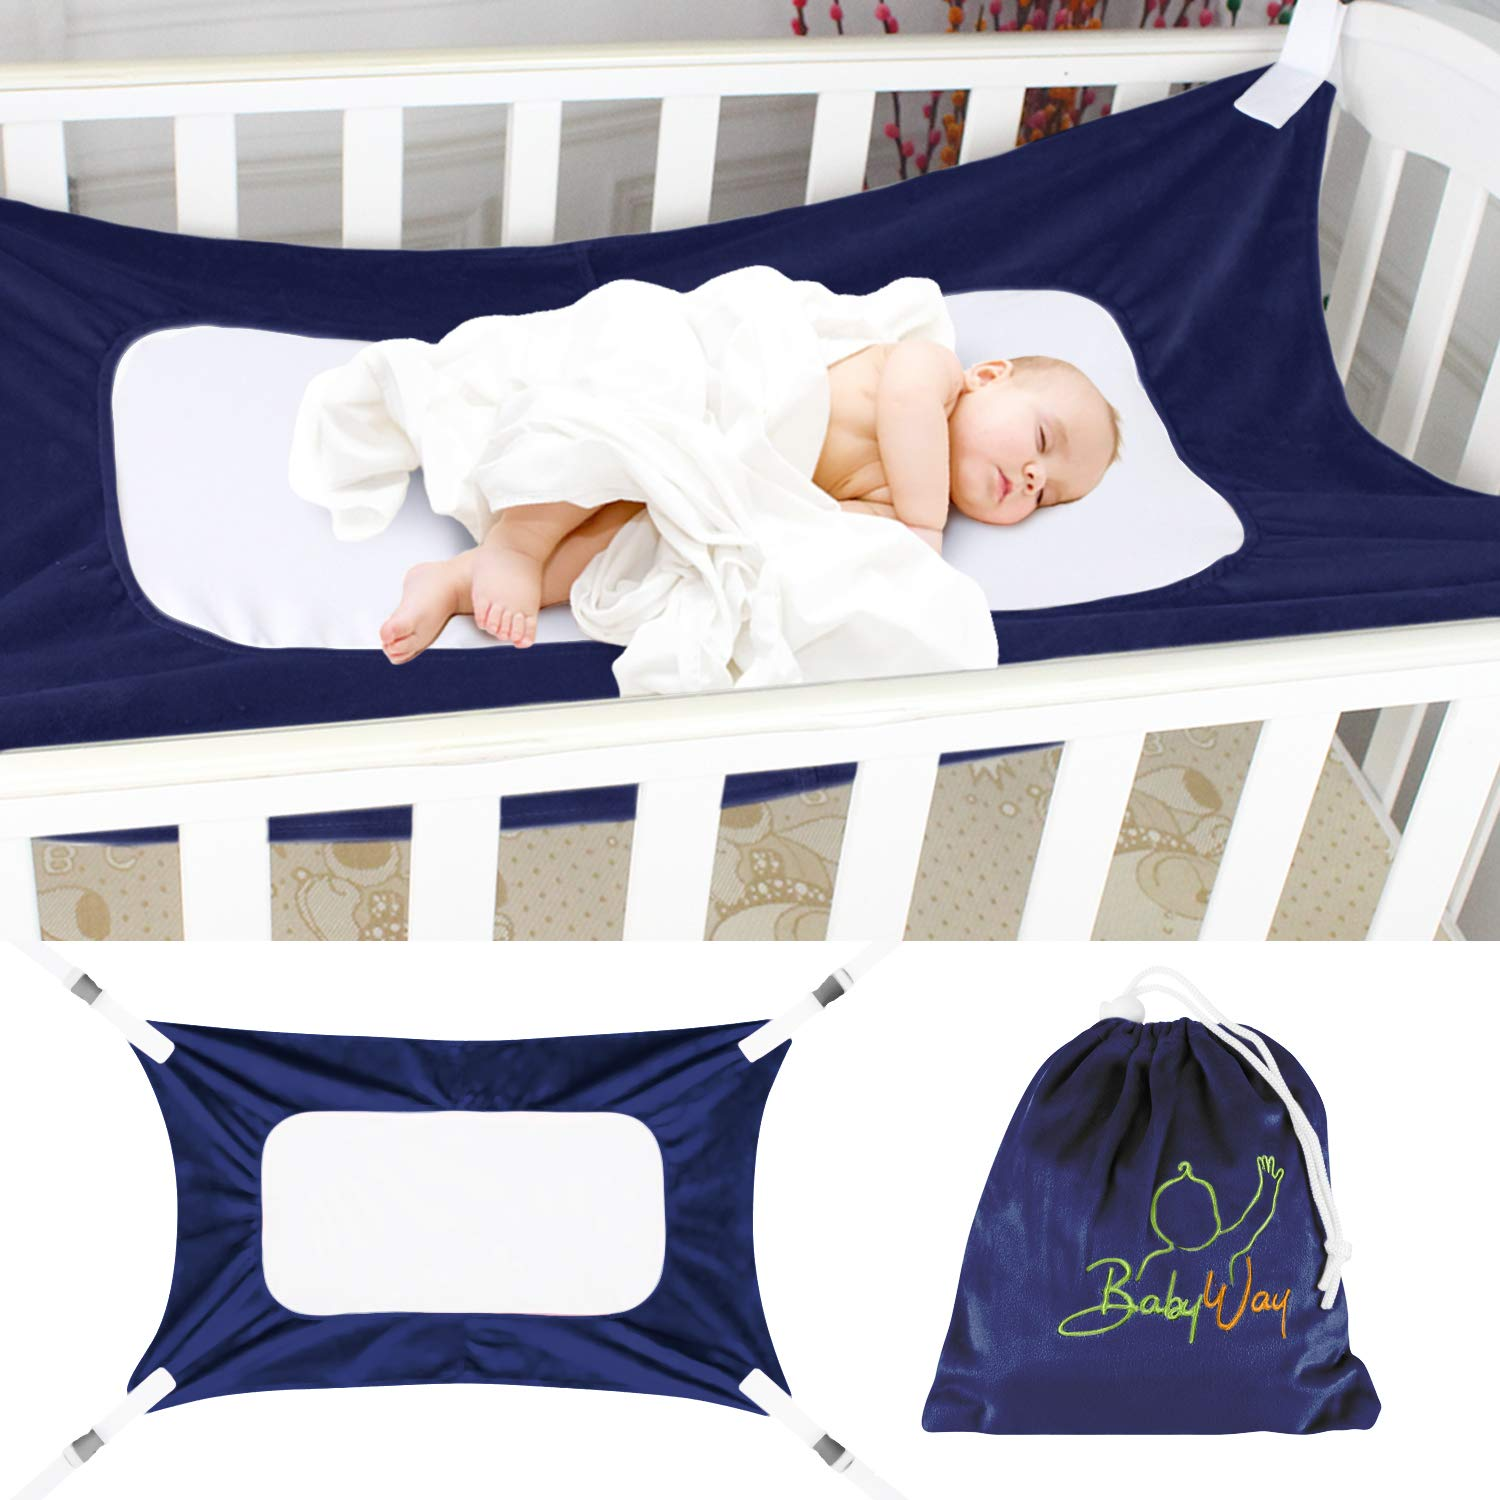 The BabyWay Navy Blue Baby Crib Hammock and in Bed Bassinet | Hanging Mesh Sleep System for Womb Like Comfort | Soft, Breathable Safety Supports Newborn Infants | Storage Bag